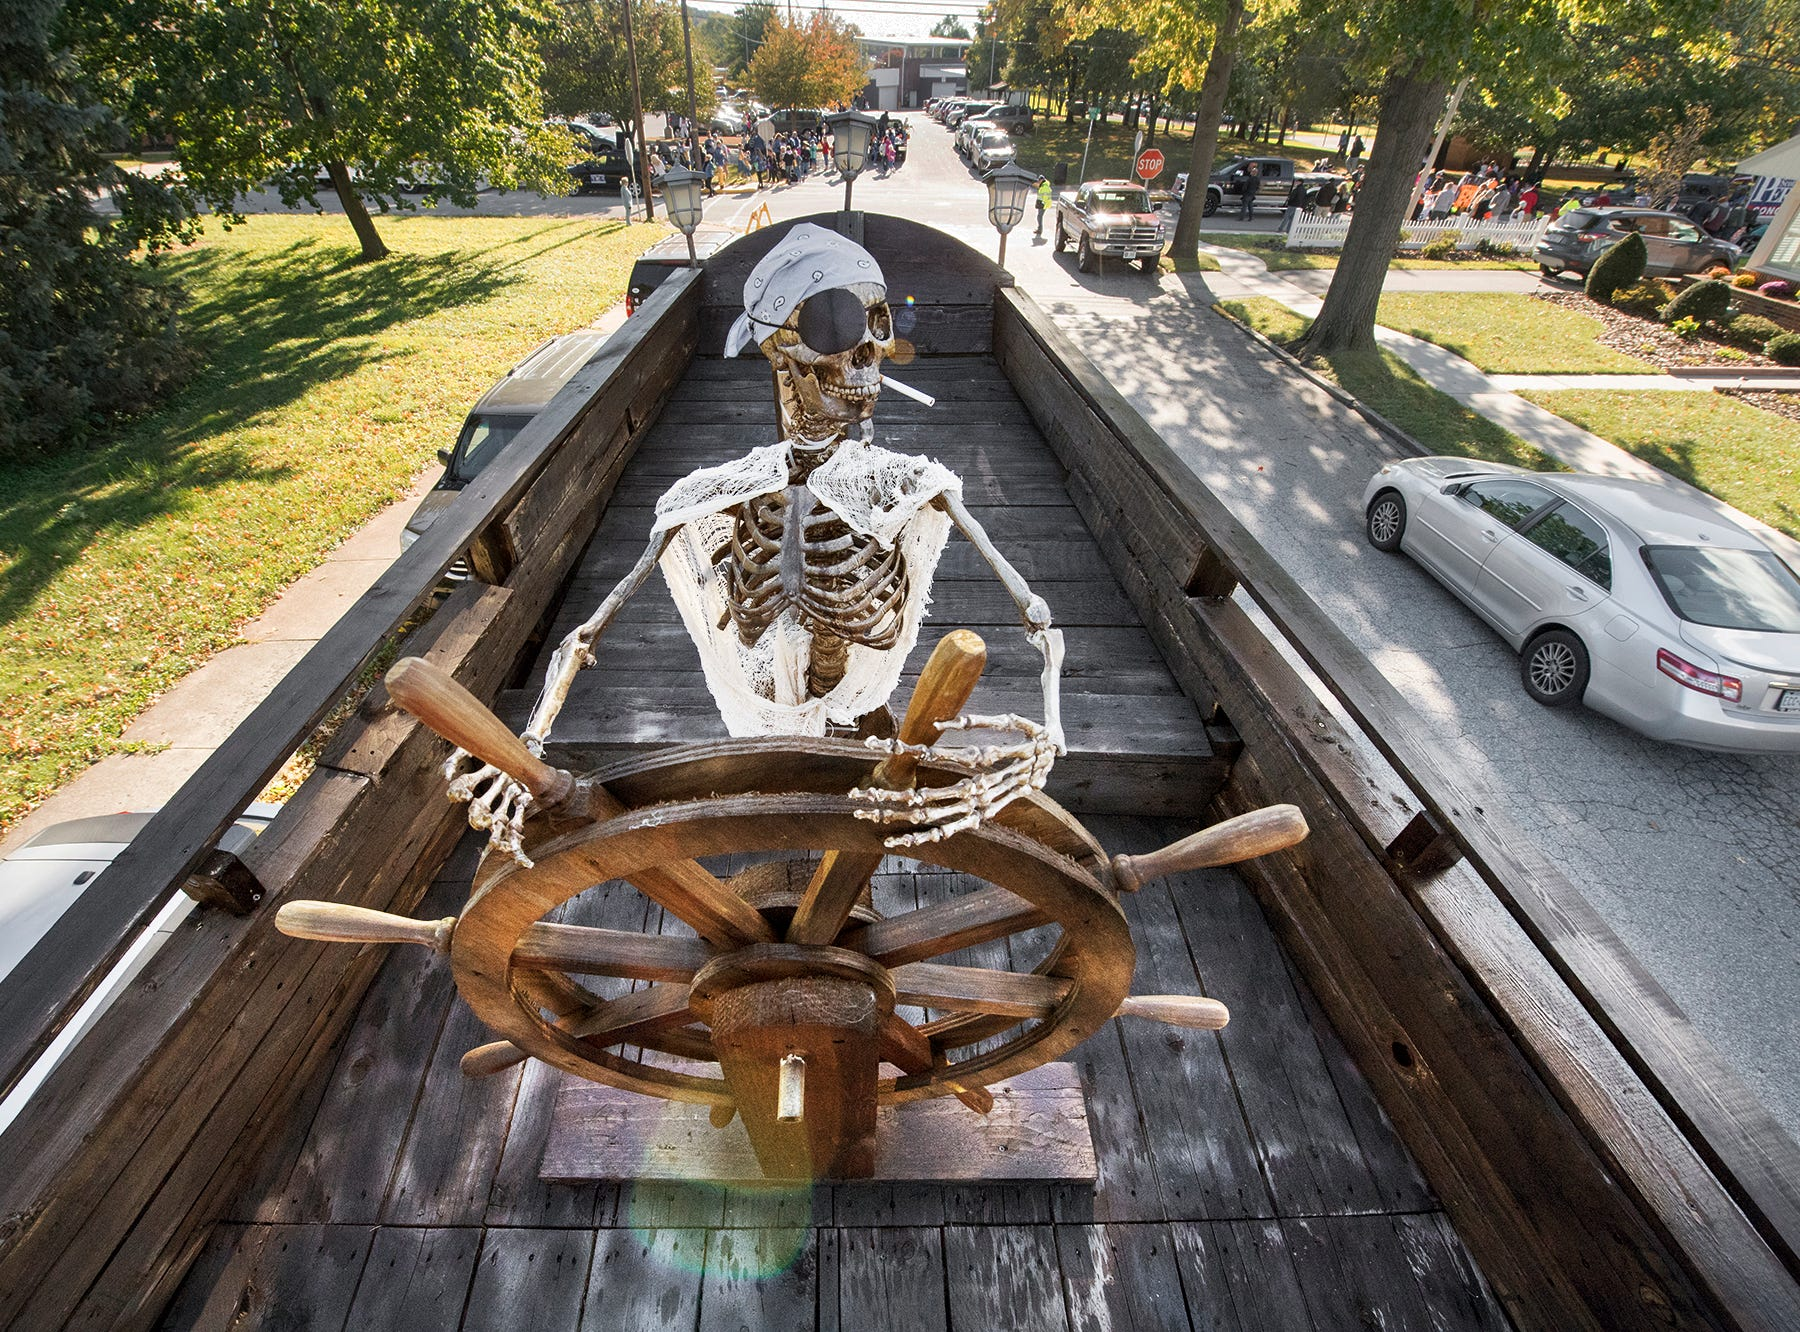 The ship's wheel is manned by a skeleton on the bow of the pirate ship during the 53rd Annual Manchester/Mt. Wolf Halloween Parade.